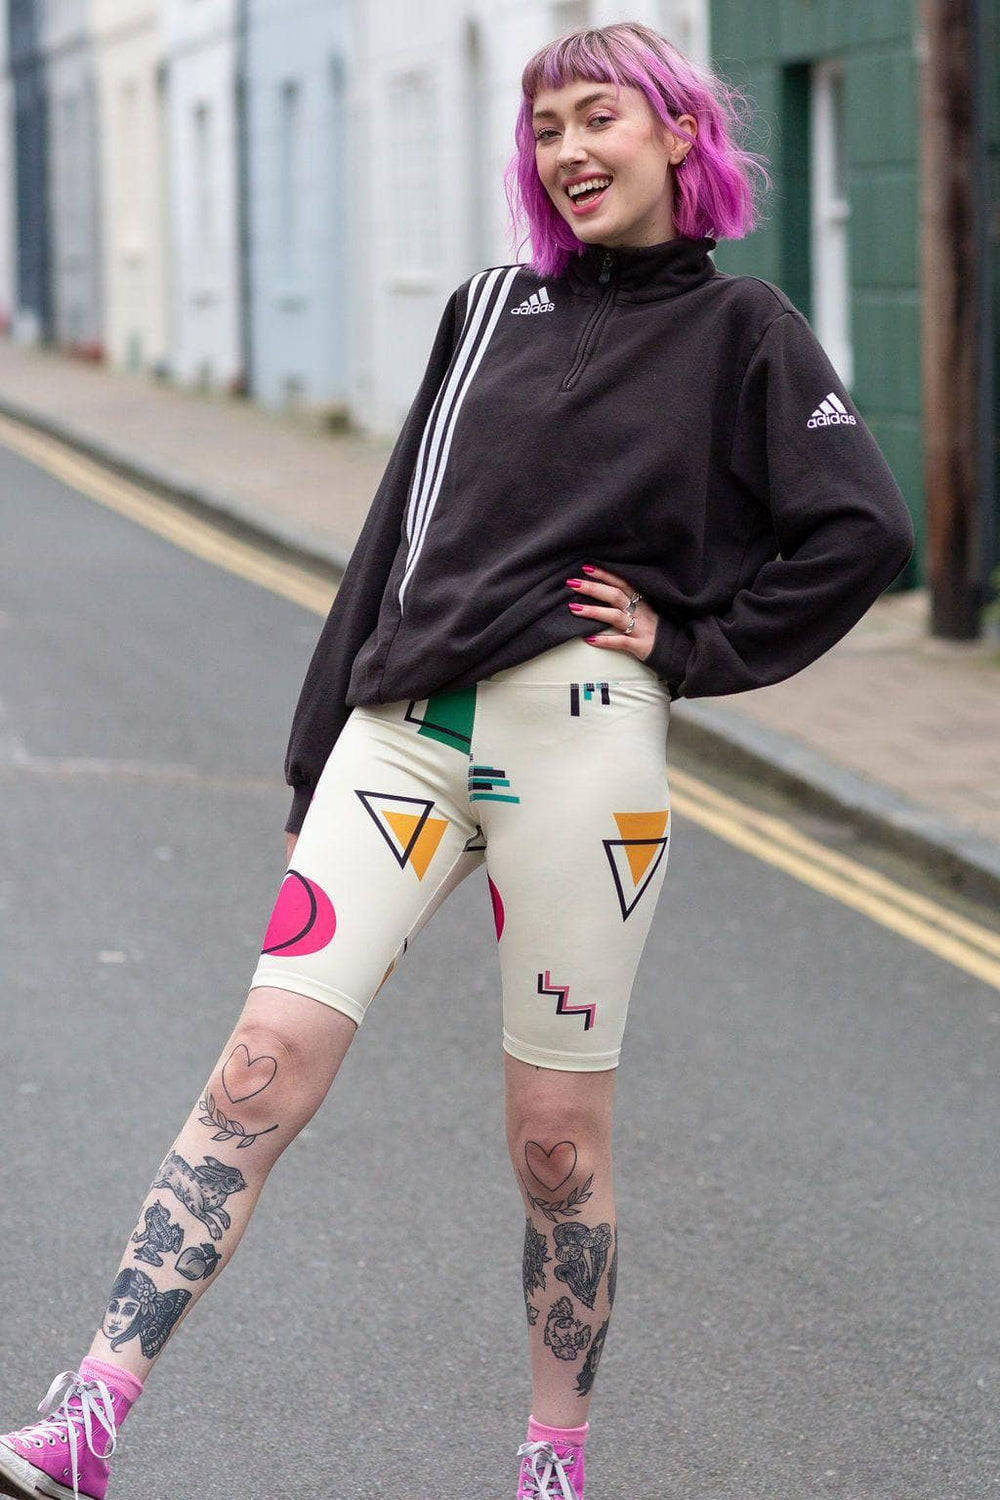 Lucy & Yak shorts 'Dustin' High Waisted Cycling Shorts in 90's Abstract Print